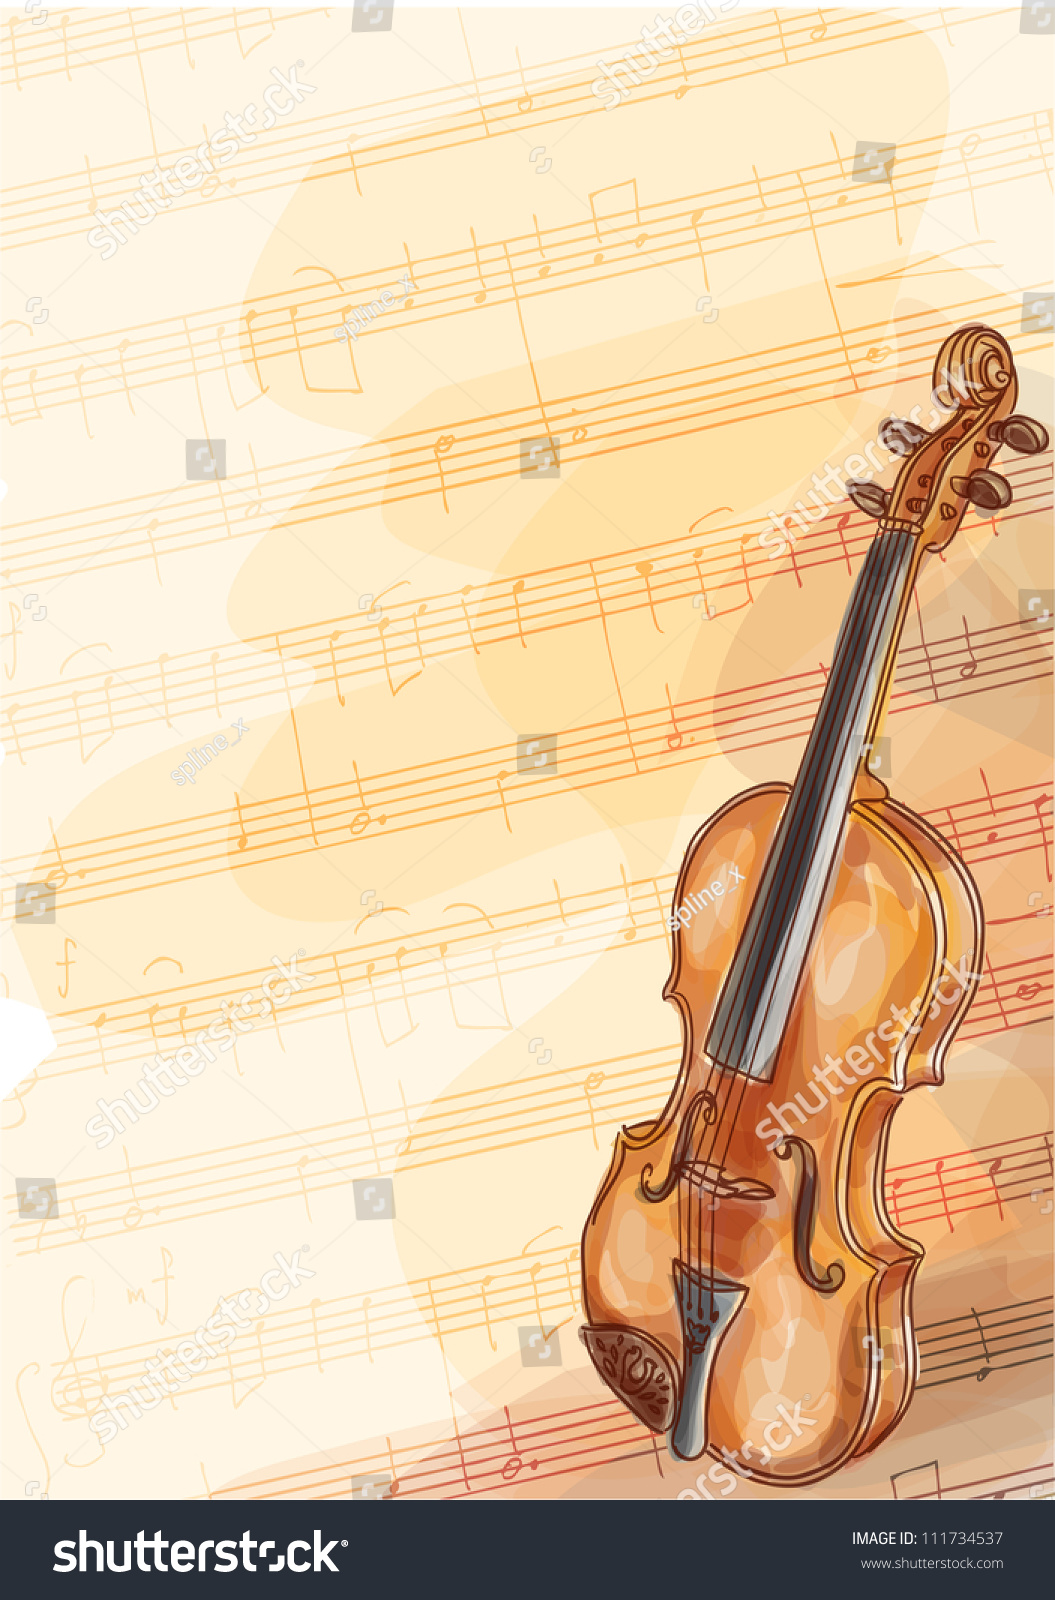 Violin On Music Background Handmade Notes Stock Vector (Royalty Free ...